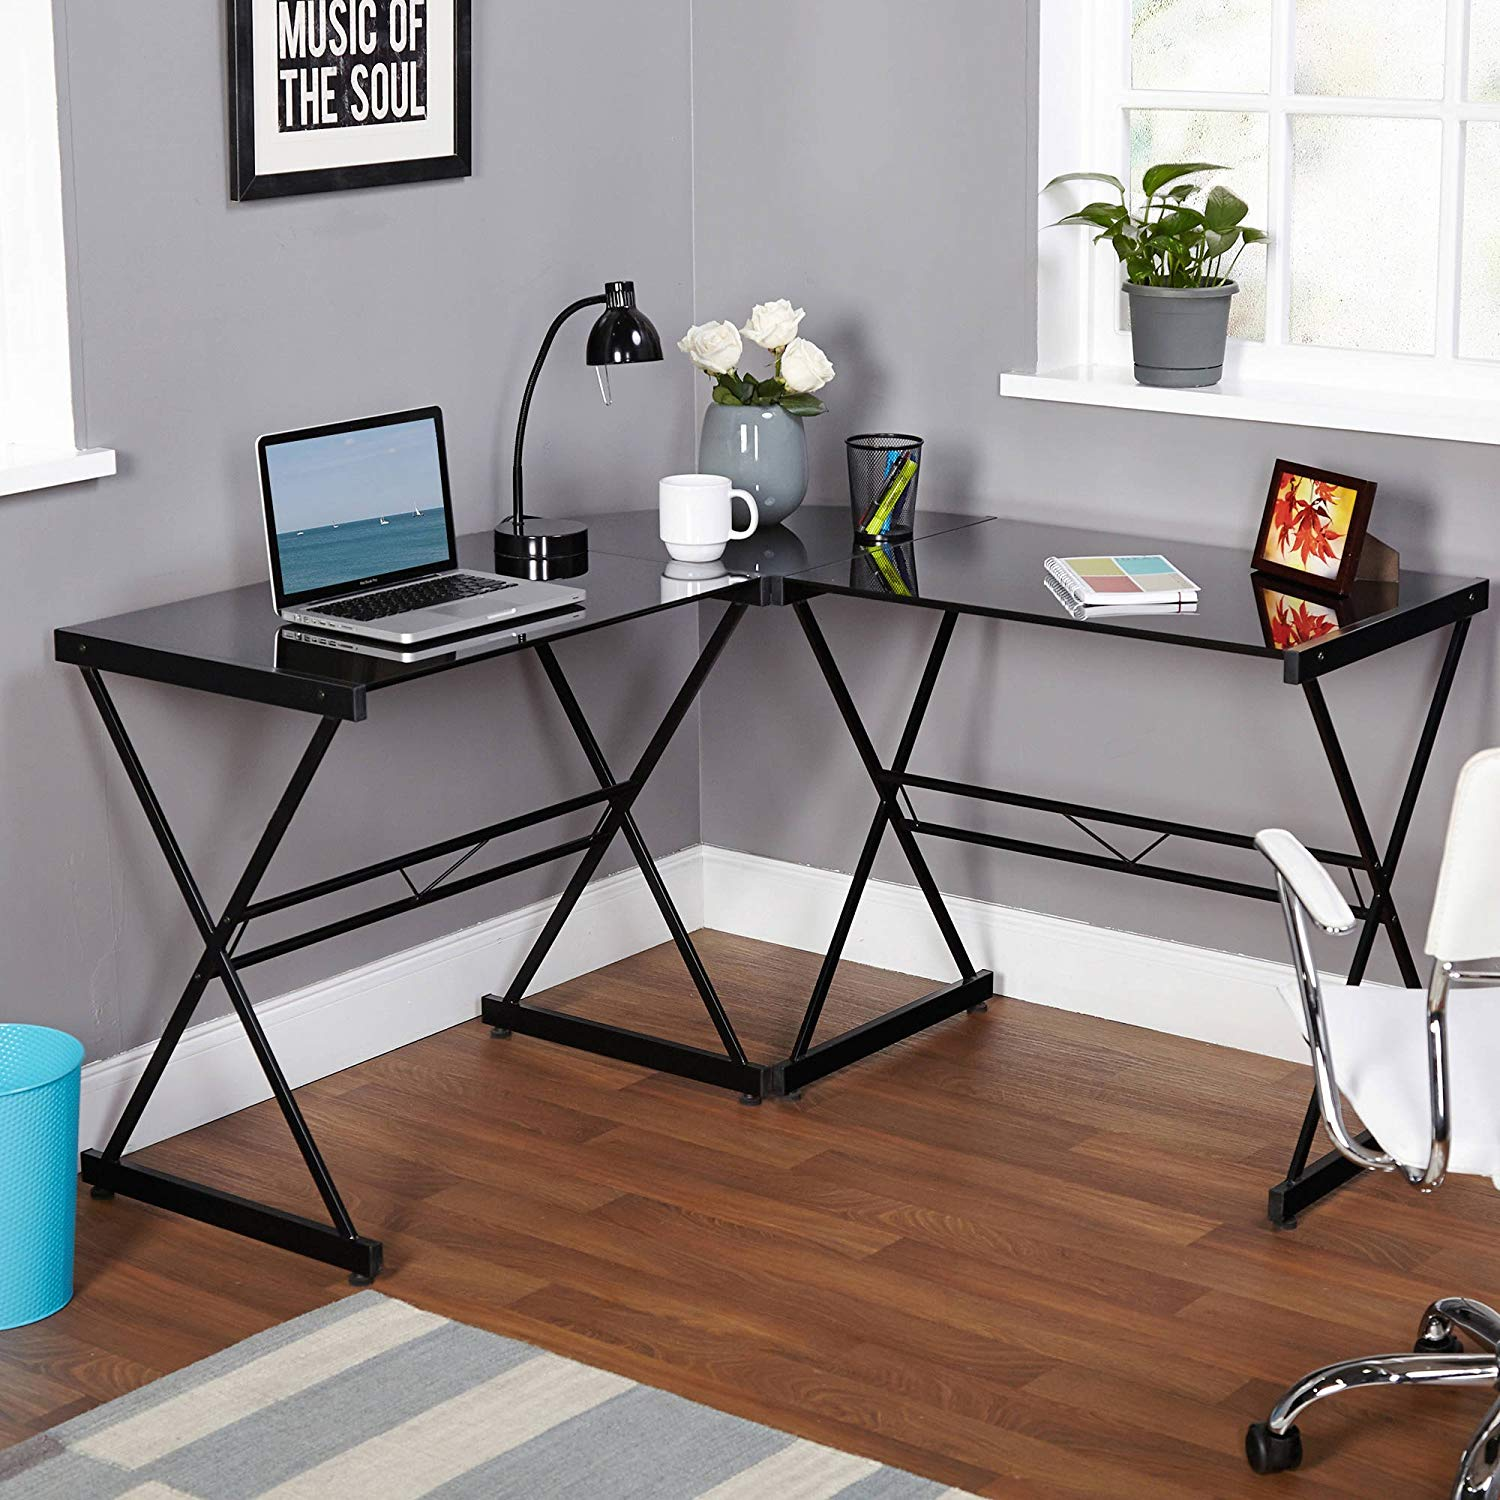 Metal and Glass L-shaped Computer Desk, Multiple Colors, Contemporary Computer Desk with Durable Metal Frame, Provides Space for Computer, Electronics and Office Supplies, Made with Tempered Glass